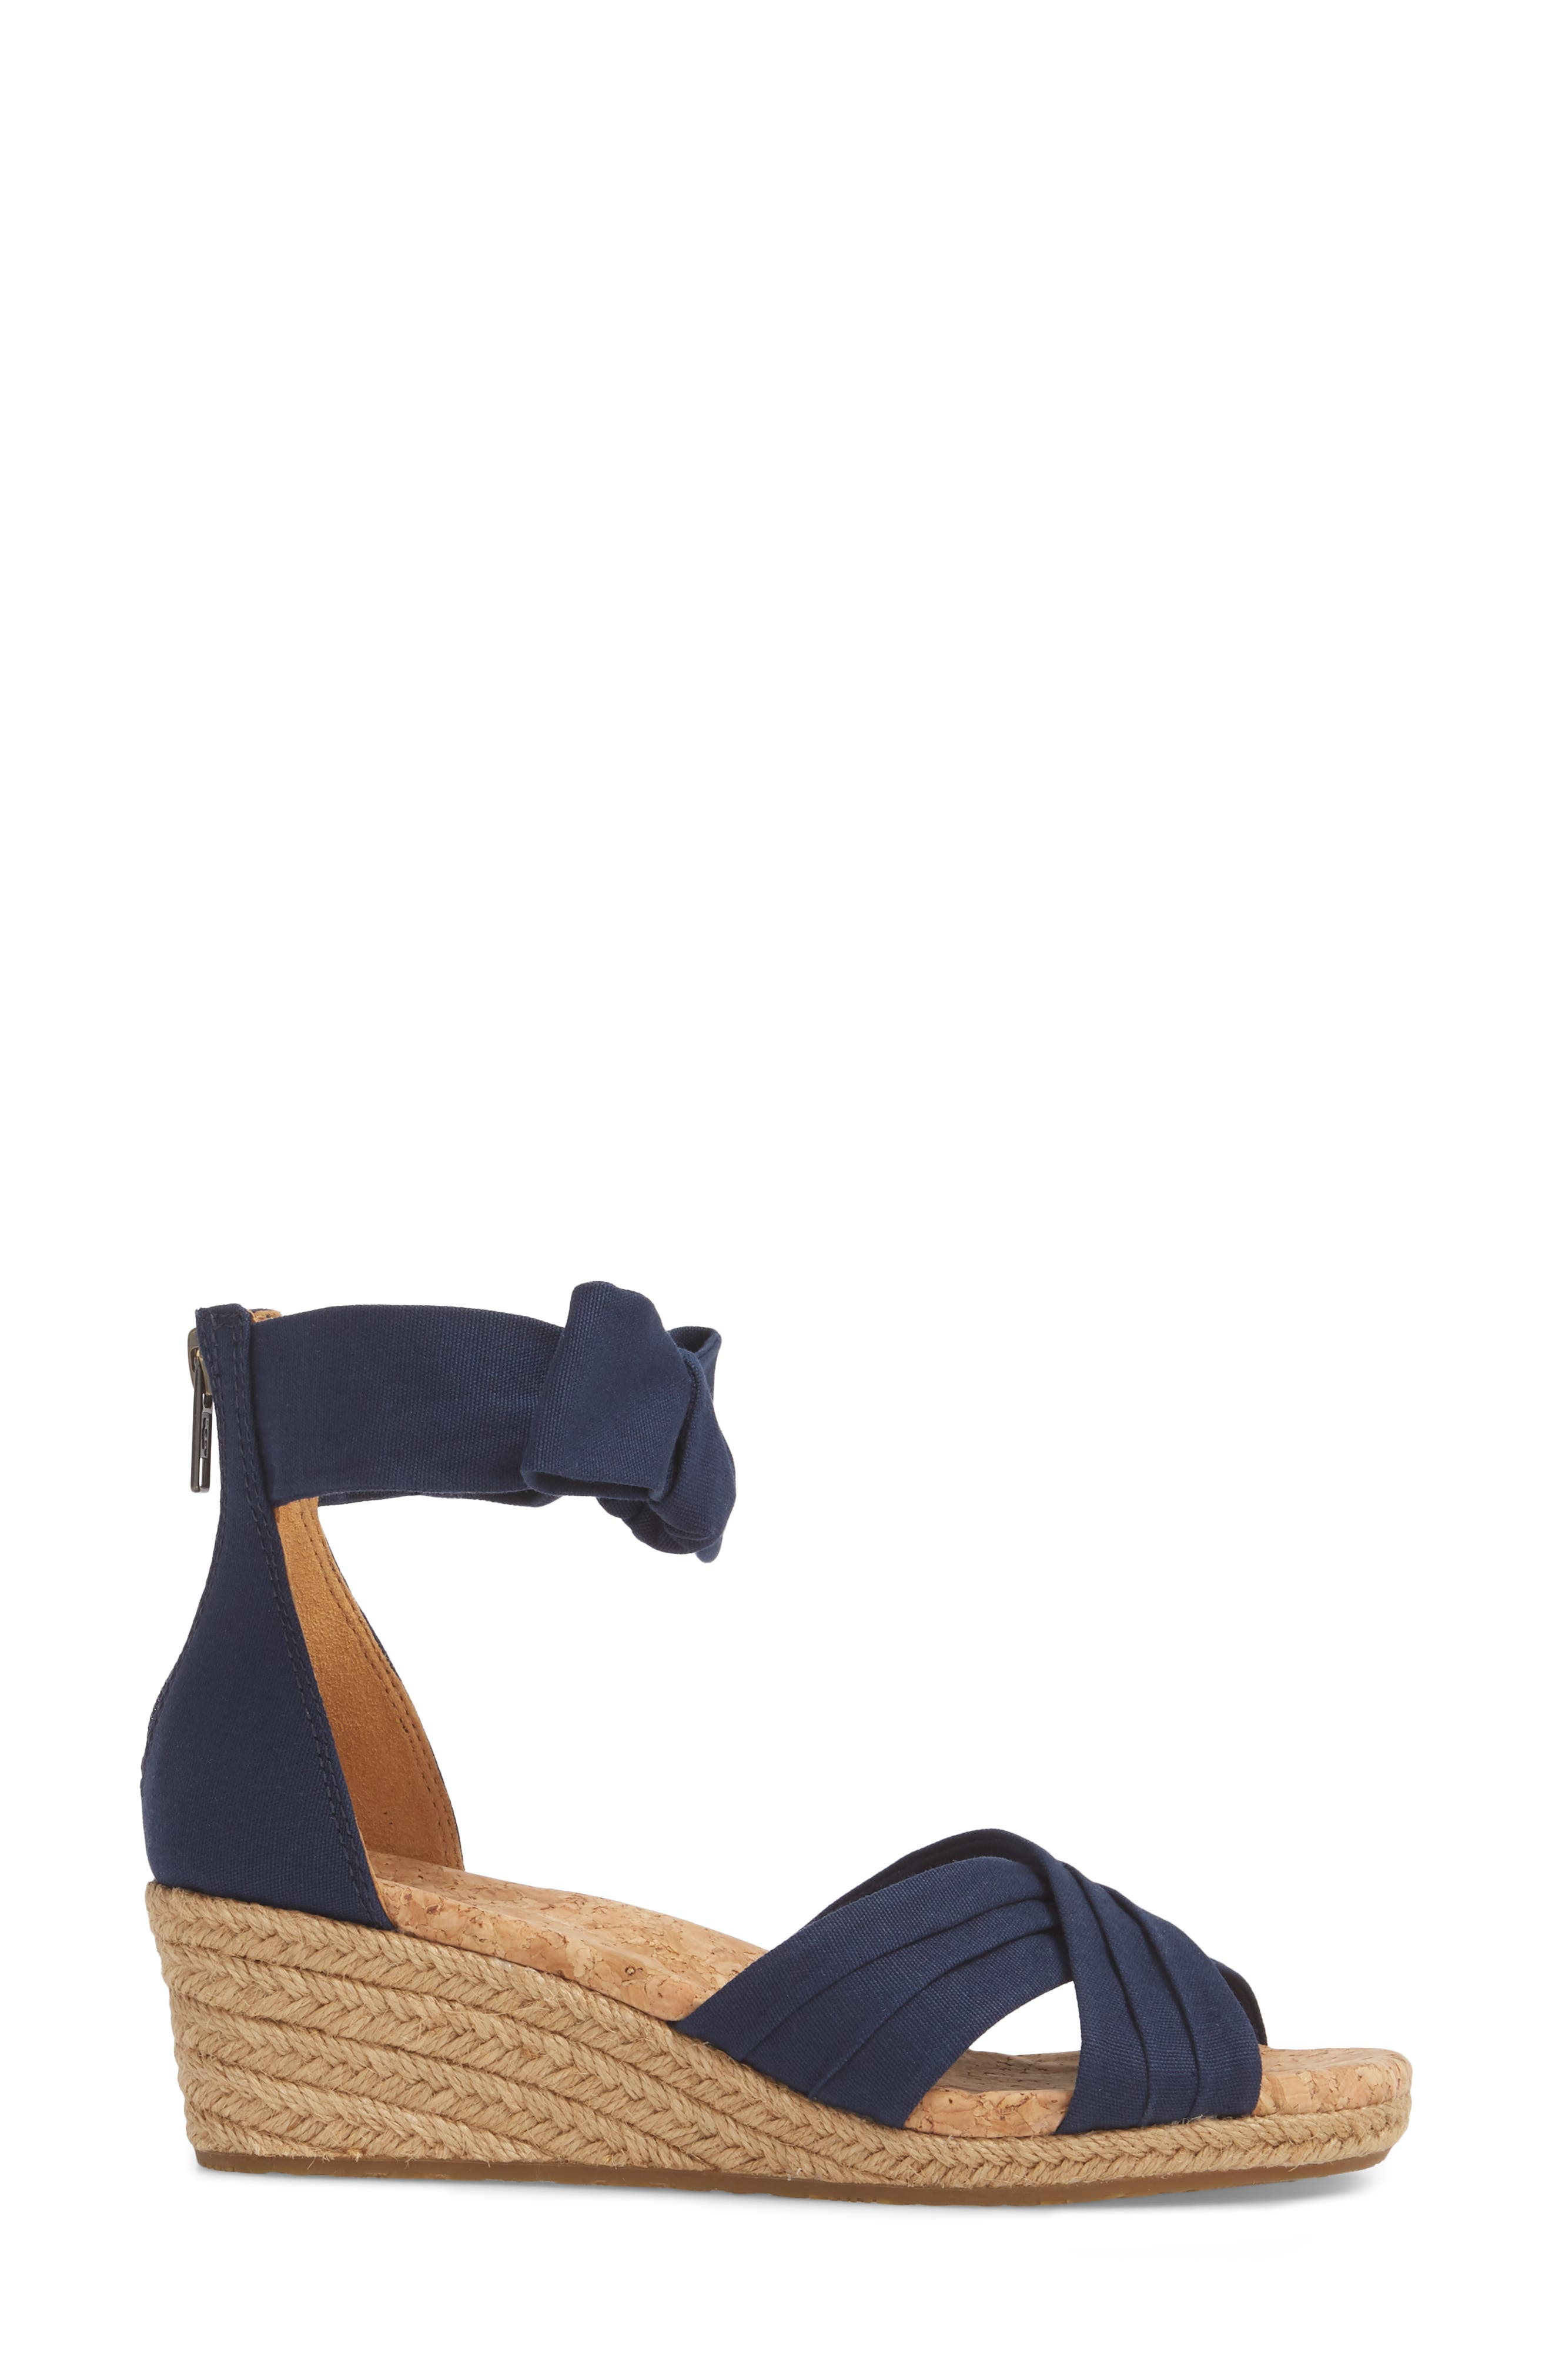 Traci Espadrille Wedge Sandal,                             Alternate thumbnail 3, color,                             Navy